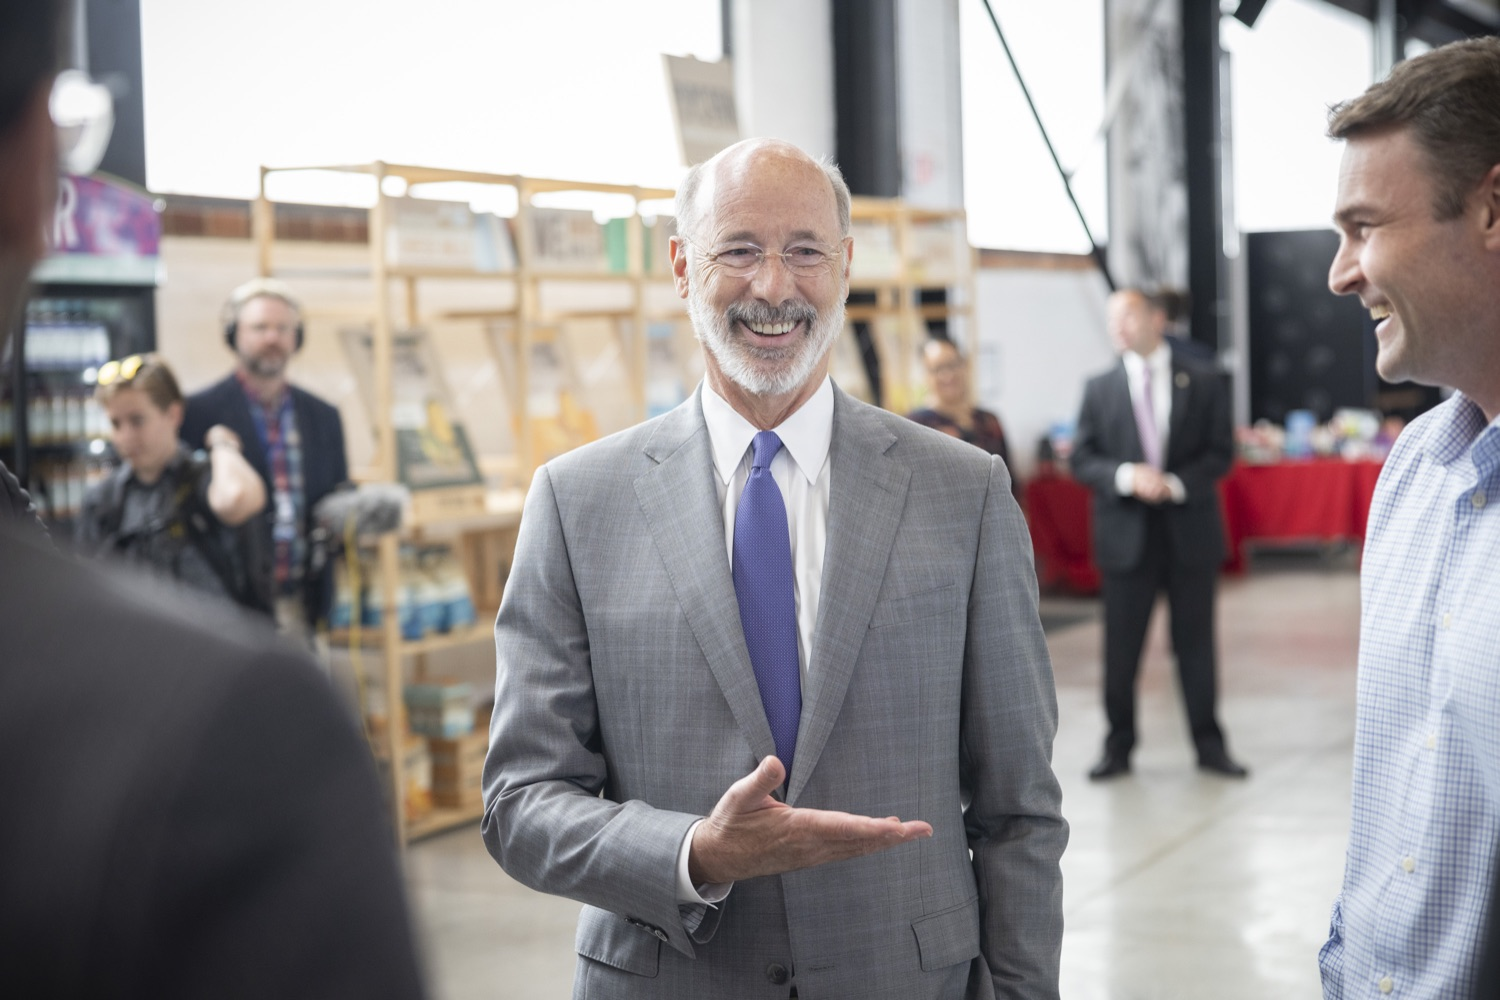 """<a href=""""https://filesource.wostreaming.net/commonwealthofpa/photo/18941_gov_economicDevelopment_dz_015.jpg"""" target=""""_blank"""">⇣Download Photo<br></a>Keith Caldwell, Partner  Factory LLC giving Pennsylvania Governor Tom Wolf a tour of Factory LLC.  Governor Tom Wolf today visited Factory LLC in Bethlehem to tour the facility and highlight the importance of investing in Pennsylvanias start-up companies. During the visit, he met with companies affiliated with Factory, including Stuffed Puffs®, which received a $1 million funding proposal from the commonwealth in 2019 to expand its manufacturing operations and create jobs, Mikeys®, Pipcorn®, Honey Stinger®, and ROAR® Organic. Bethlehem, PA  July 19, 2021"""